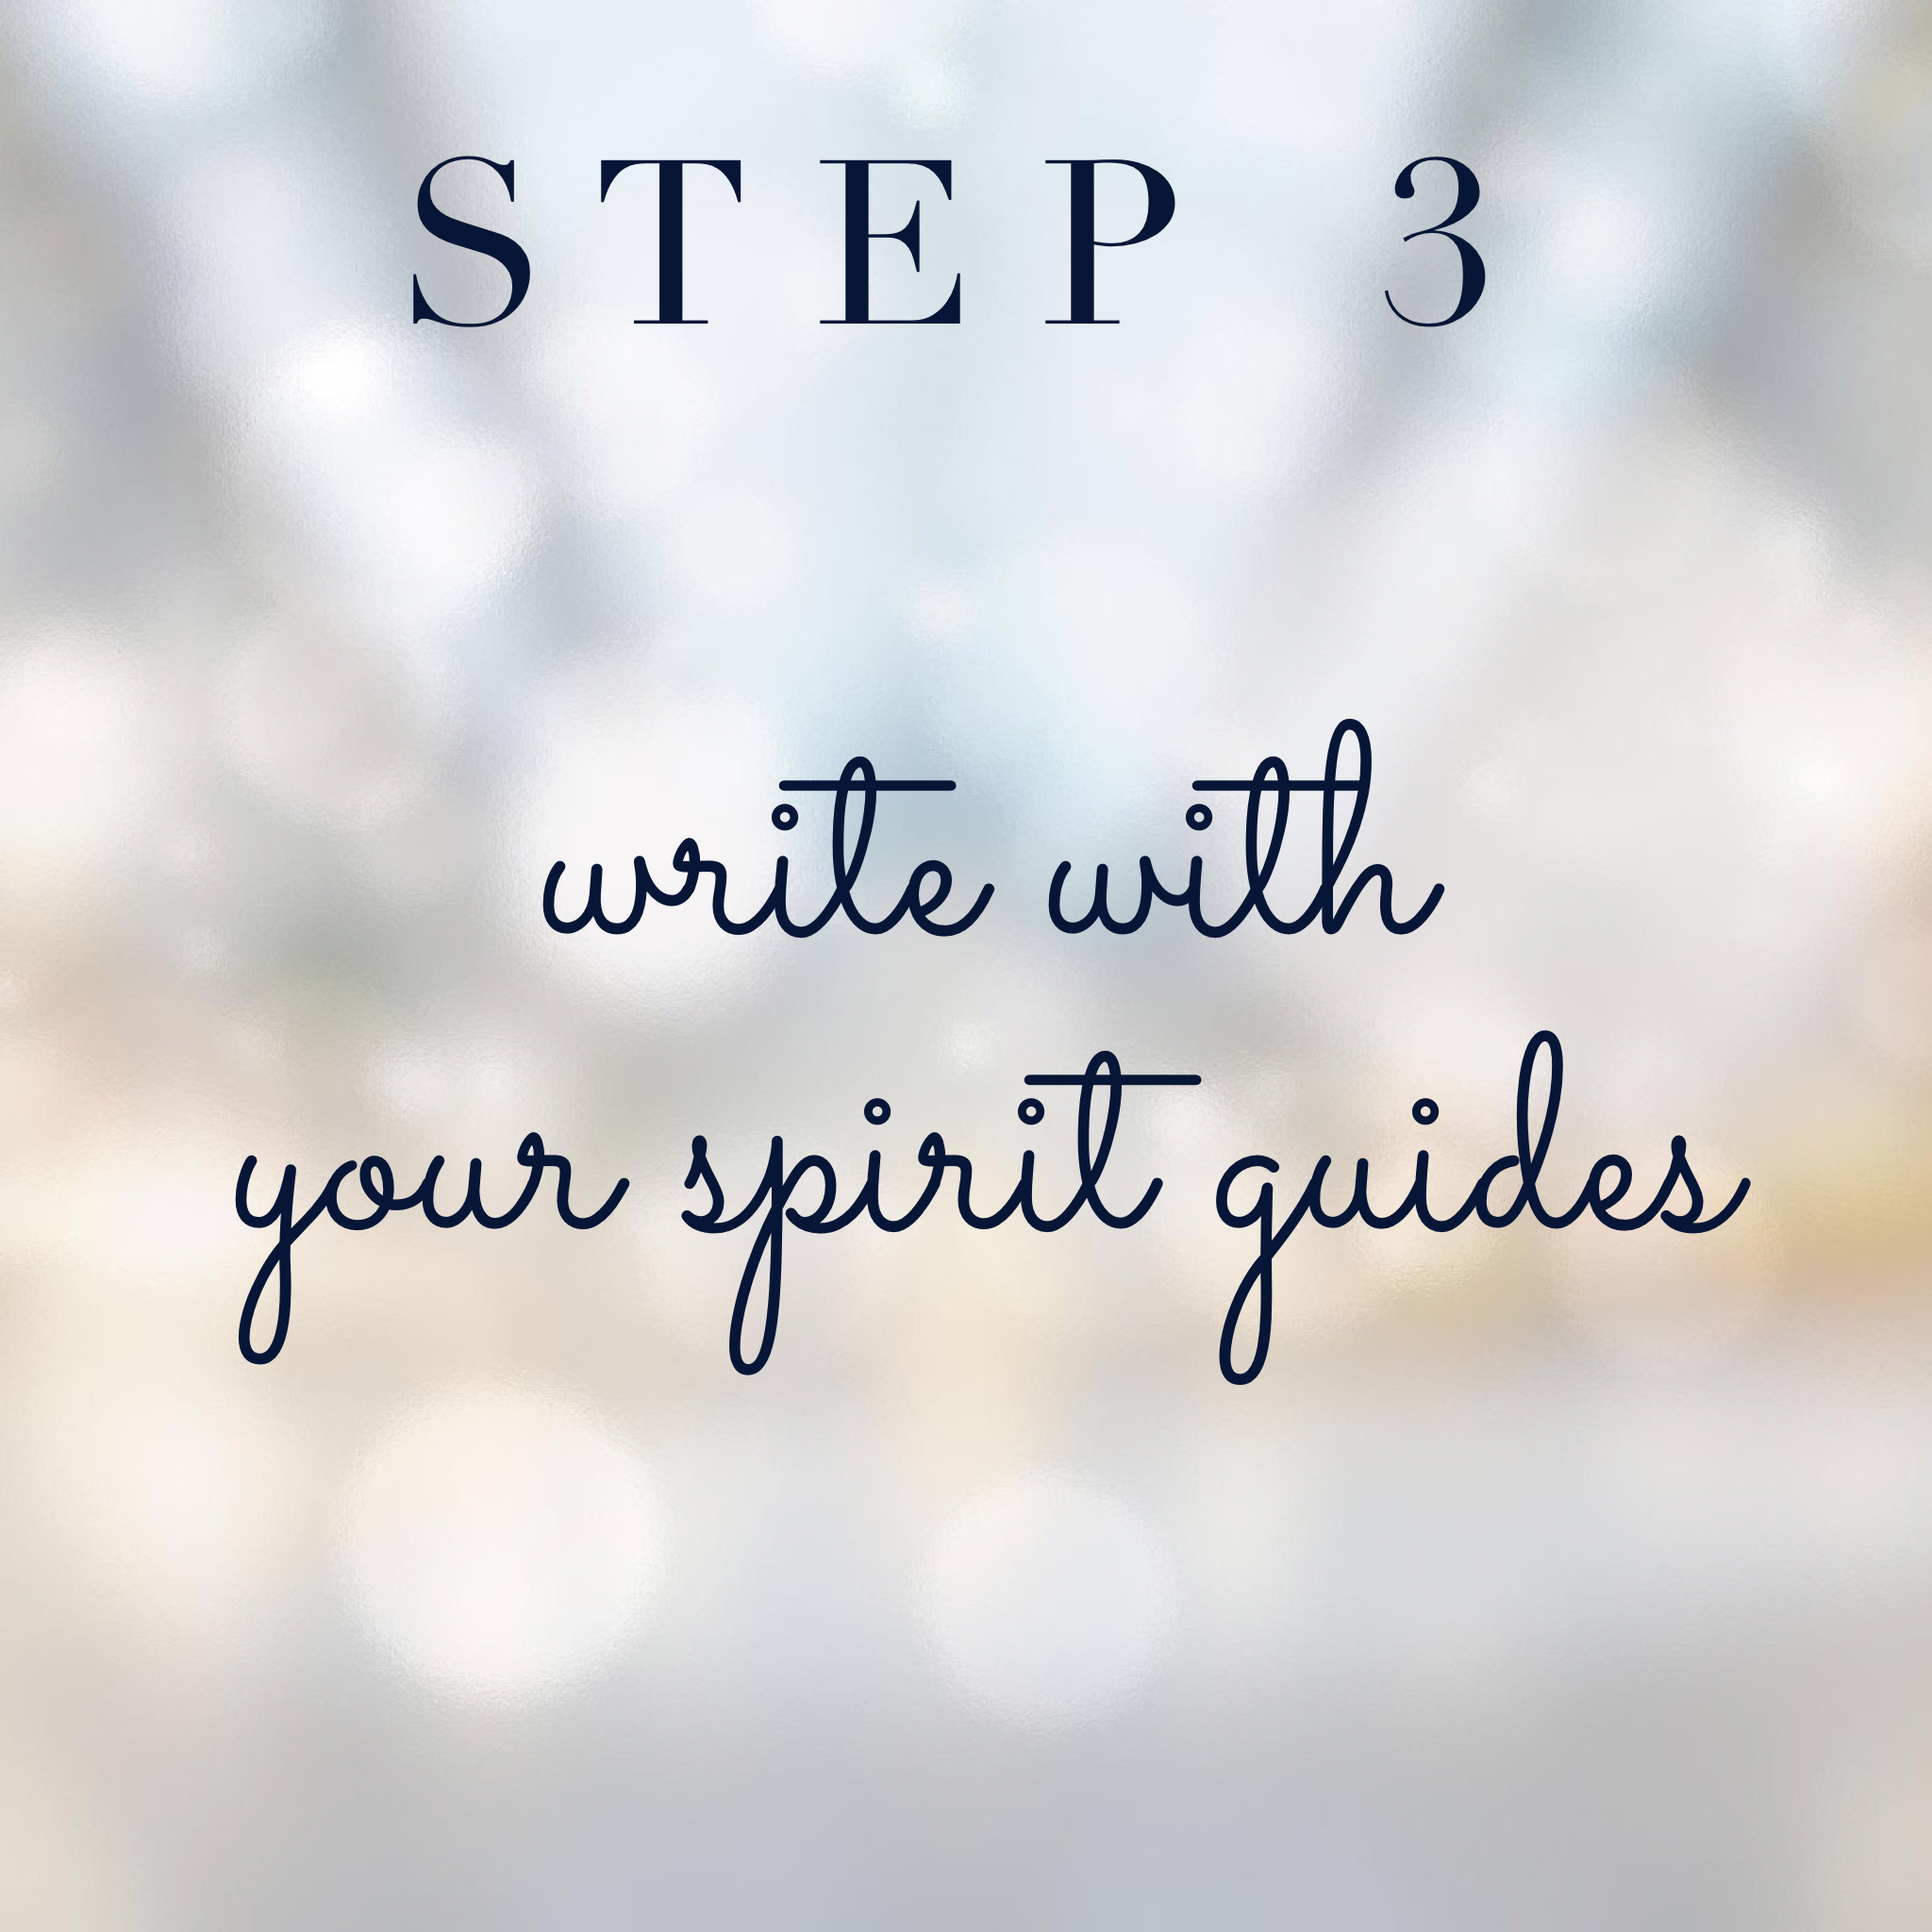 Connect with your spirit guides step 3: Write with your spirit guides